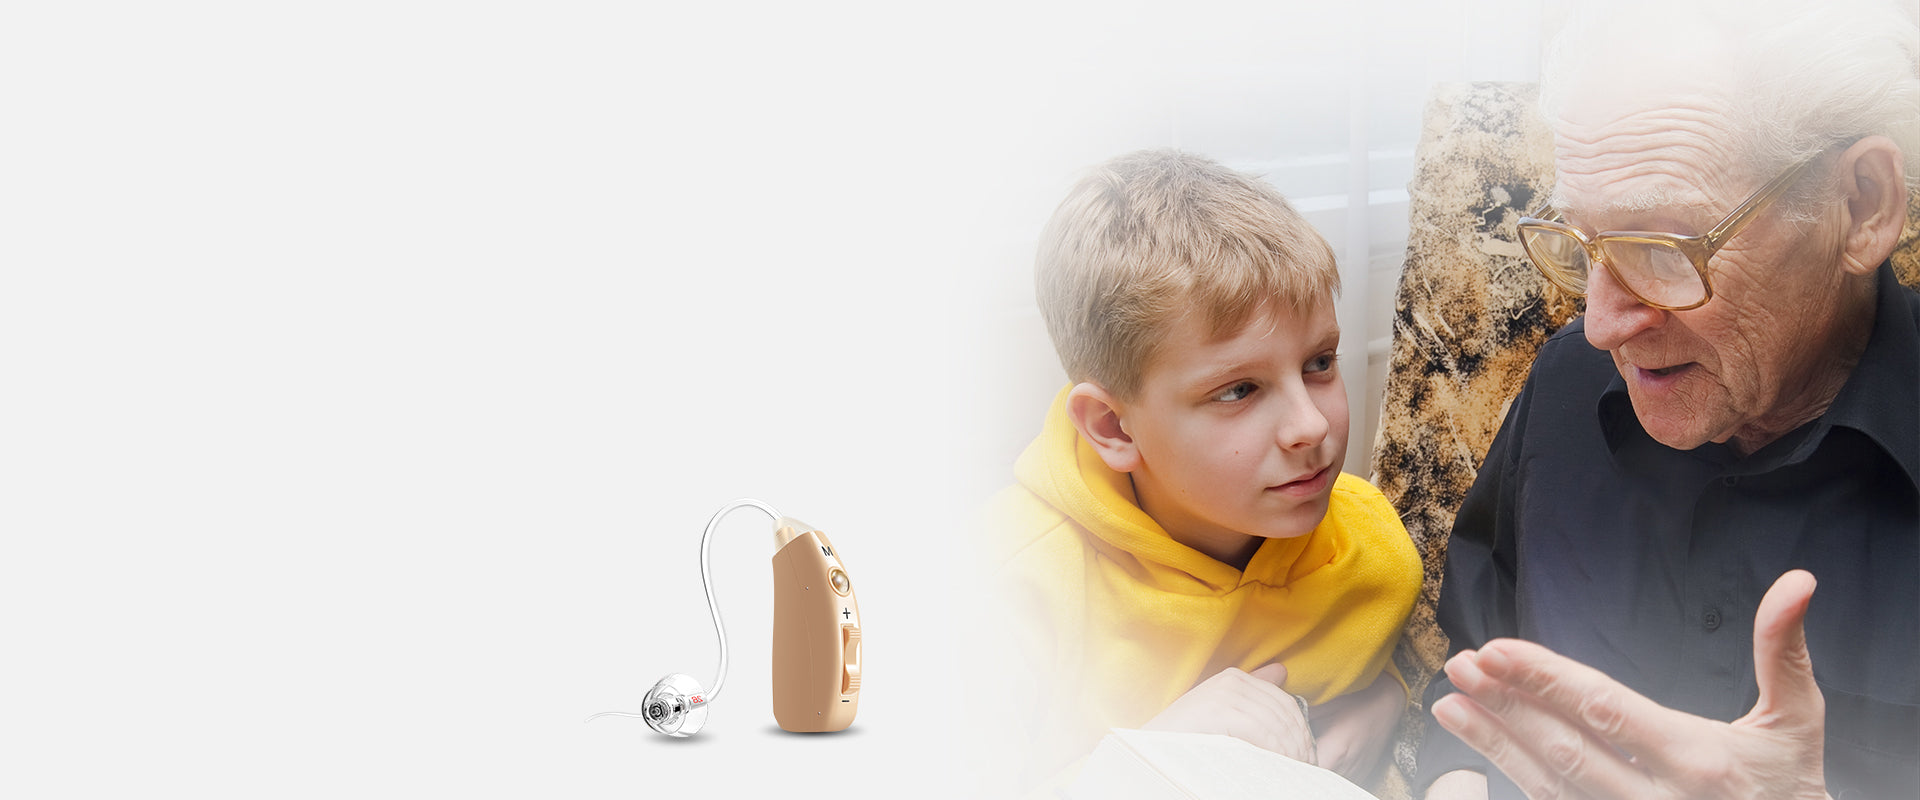 JINGHAO Rechargeable JH-A39 Hearing Aid-Digital Sound Amplifier Pair with USB Portable Battery Case-Hearing Aid